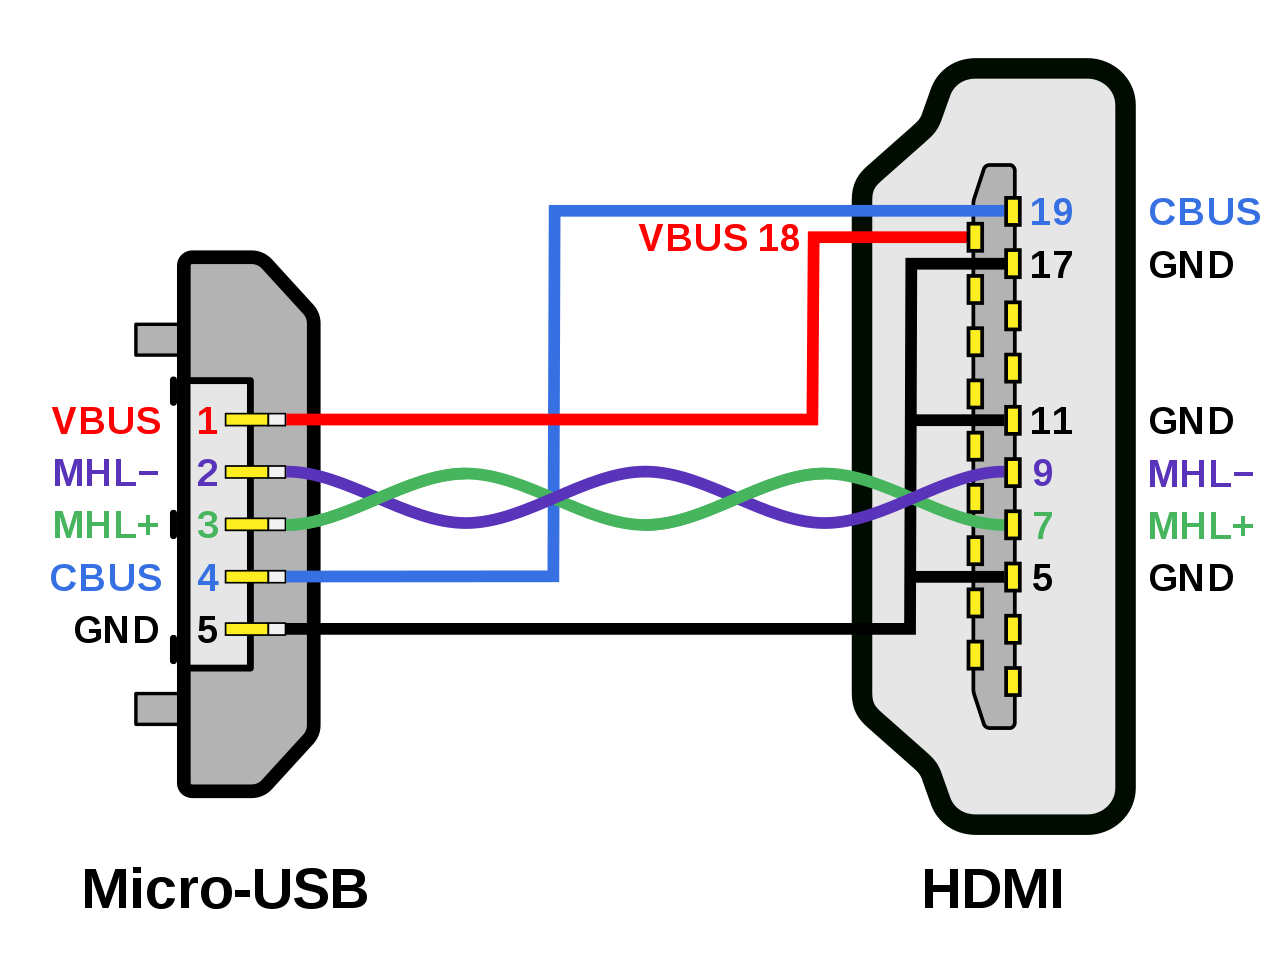 Wiring Diagram Hdmi Wire Color Code Diagrams | electronics